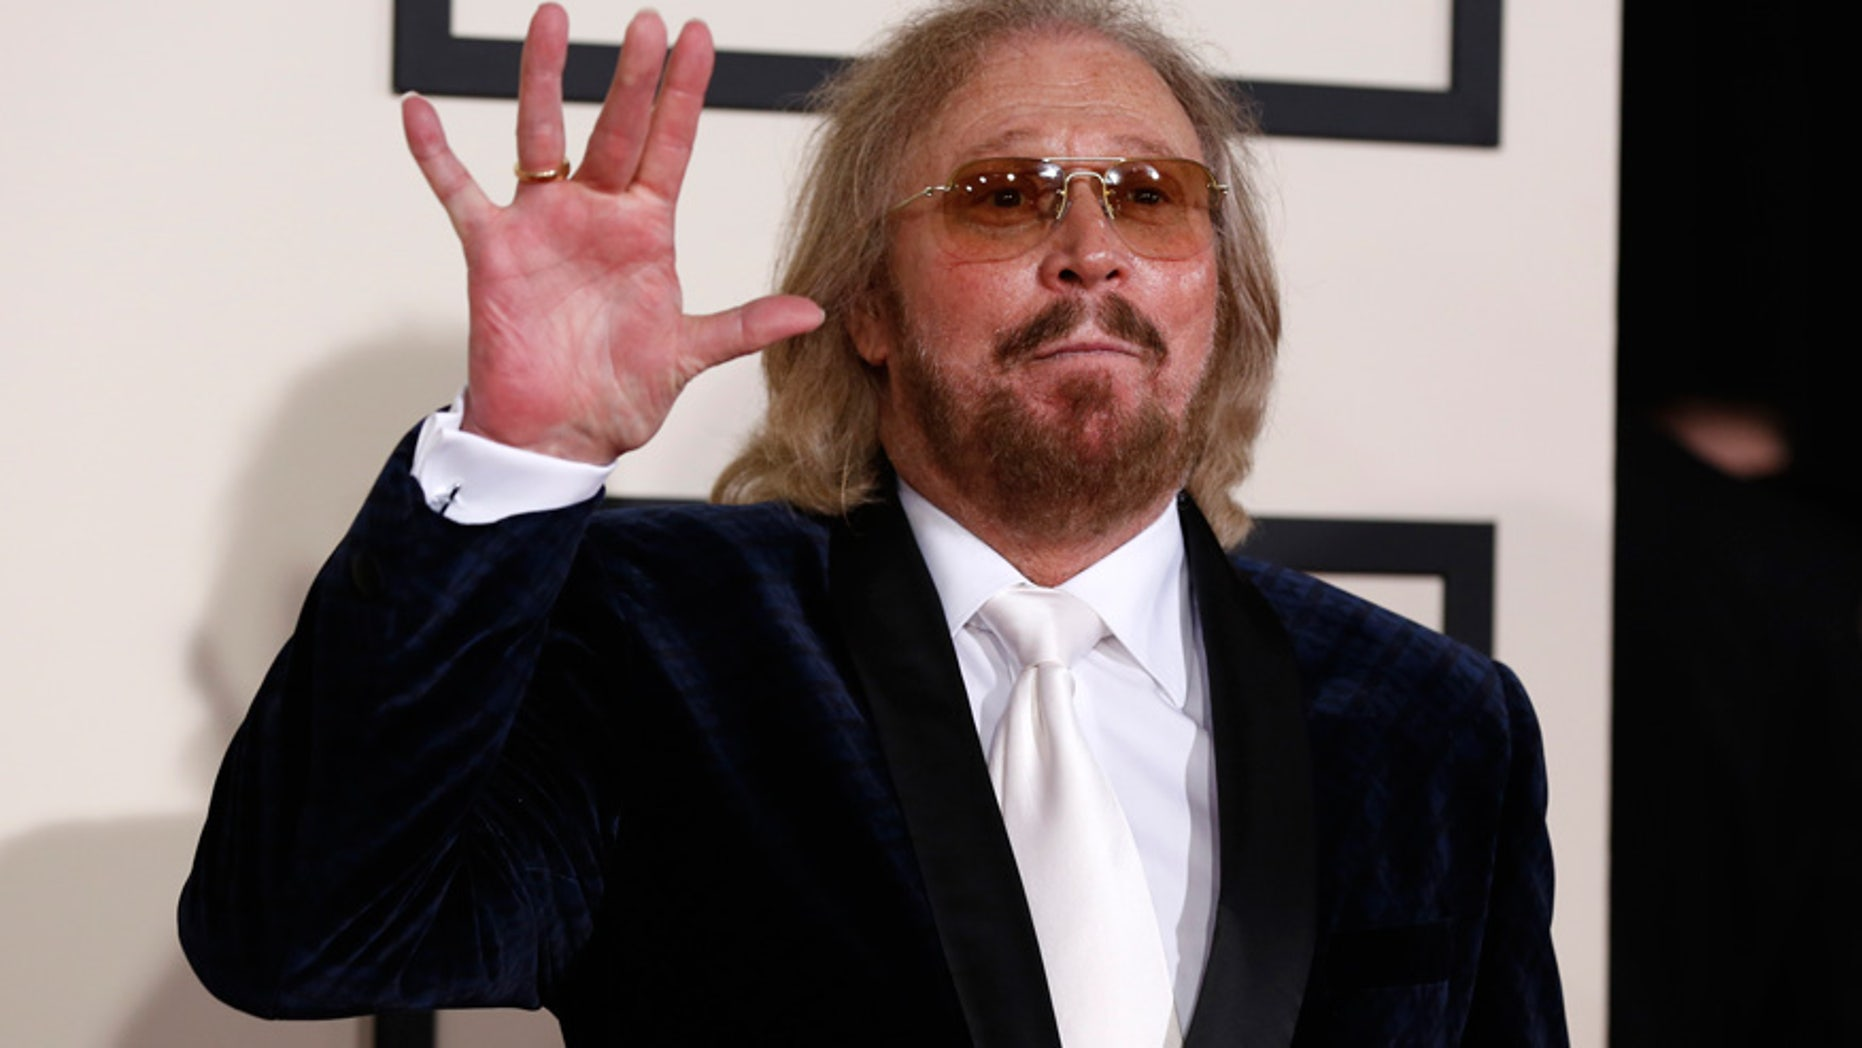 Musician Barry Gibb arrives at the 57th annual Grammy Awards in Los Angeles, California February 8, 2015.